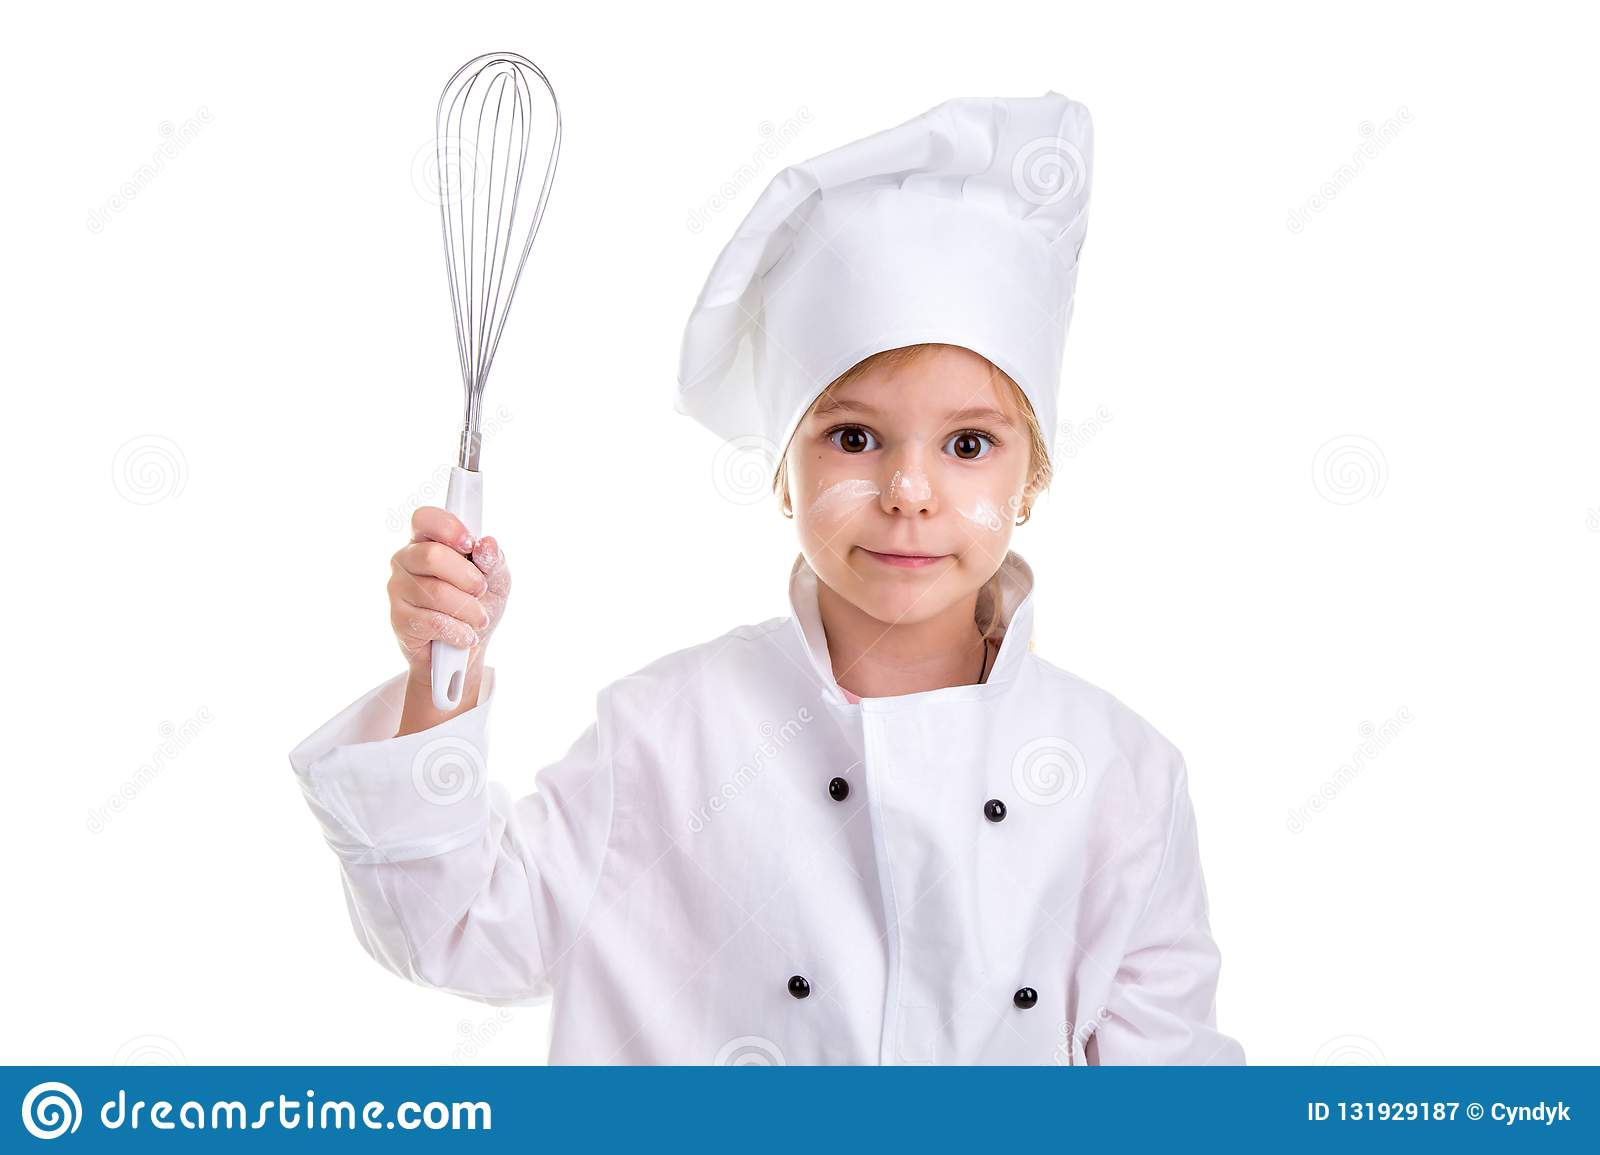 Girl chef white uniform isolated on white background. Floured face. Holding the whisk in one hand. Landscape image